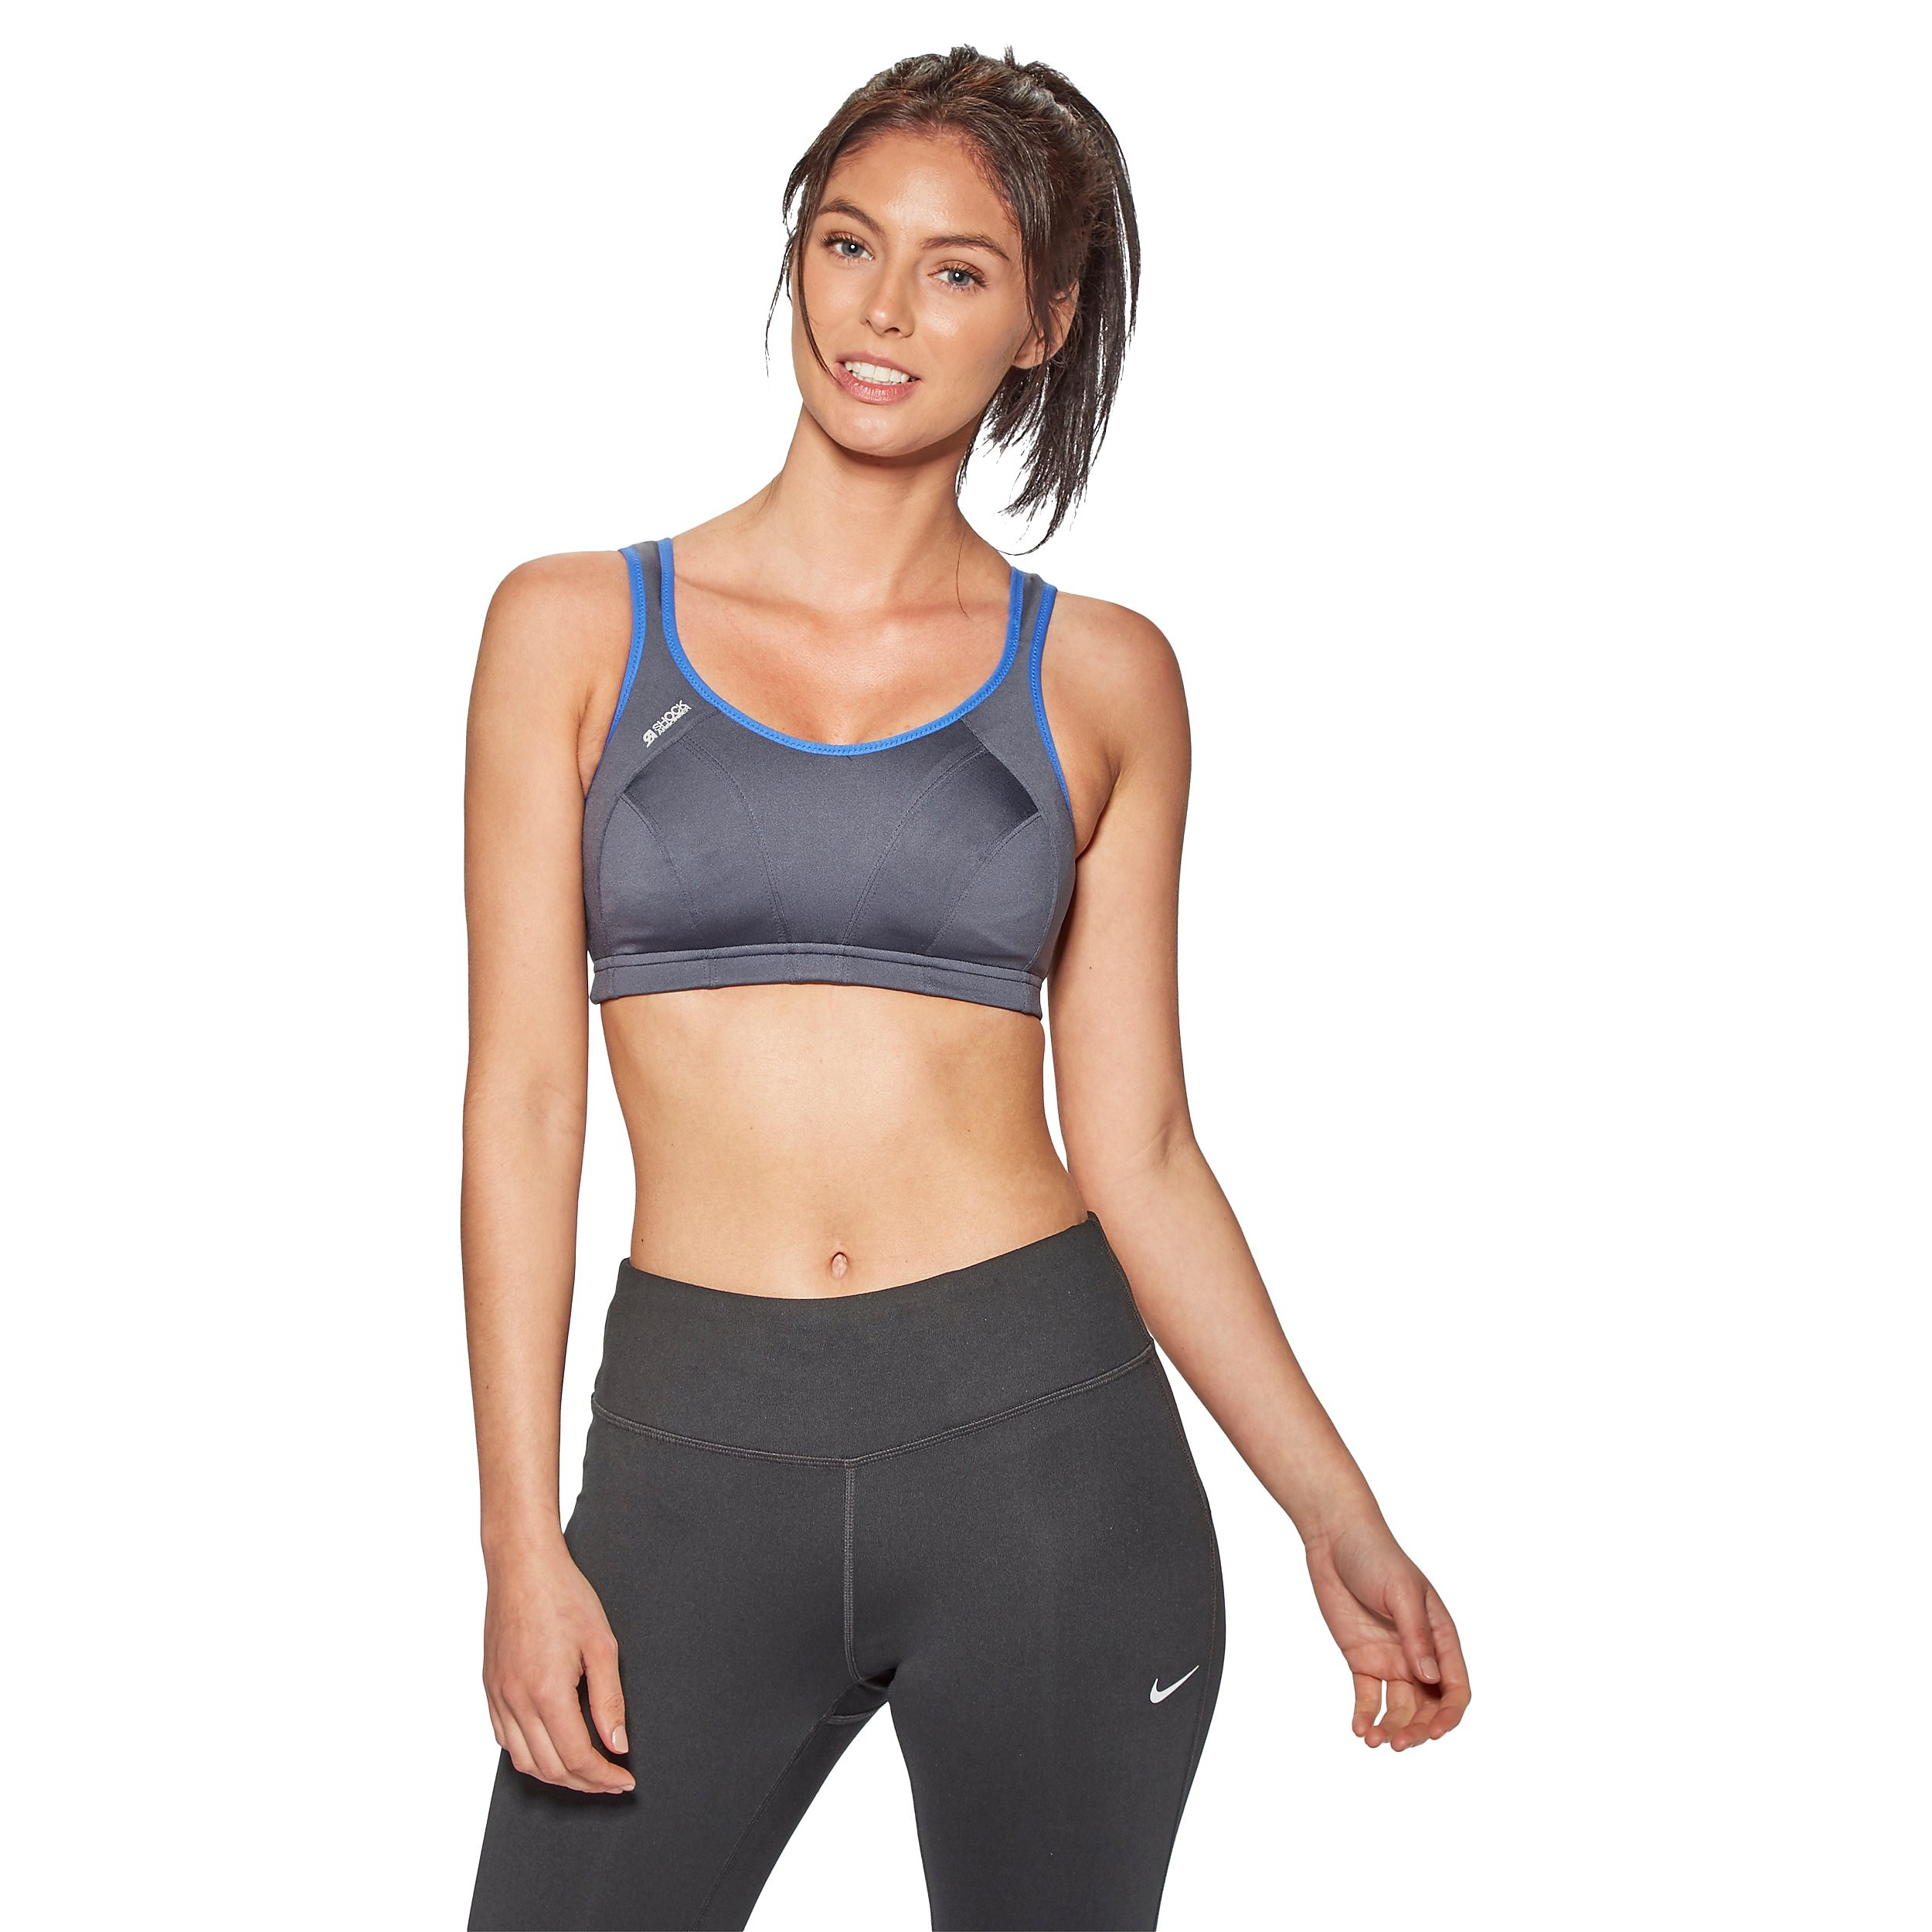 Shock Absorber Active Multi Sports Women's Support Bra